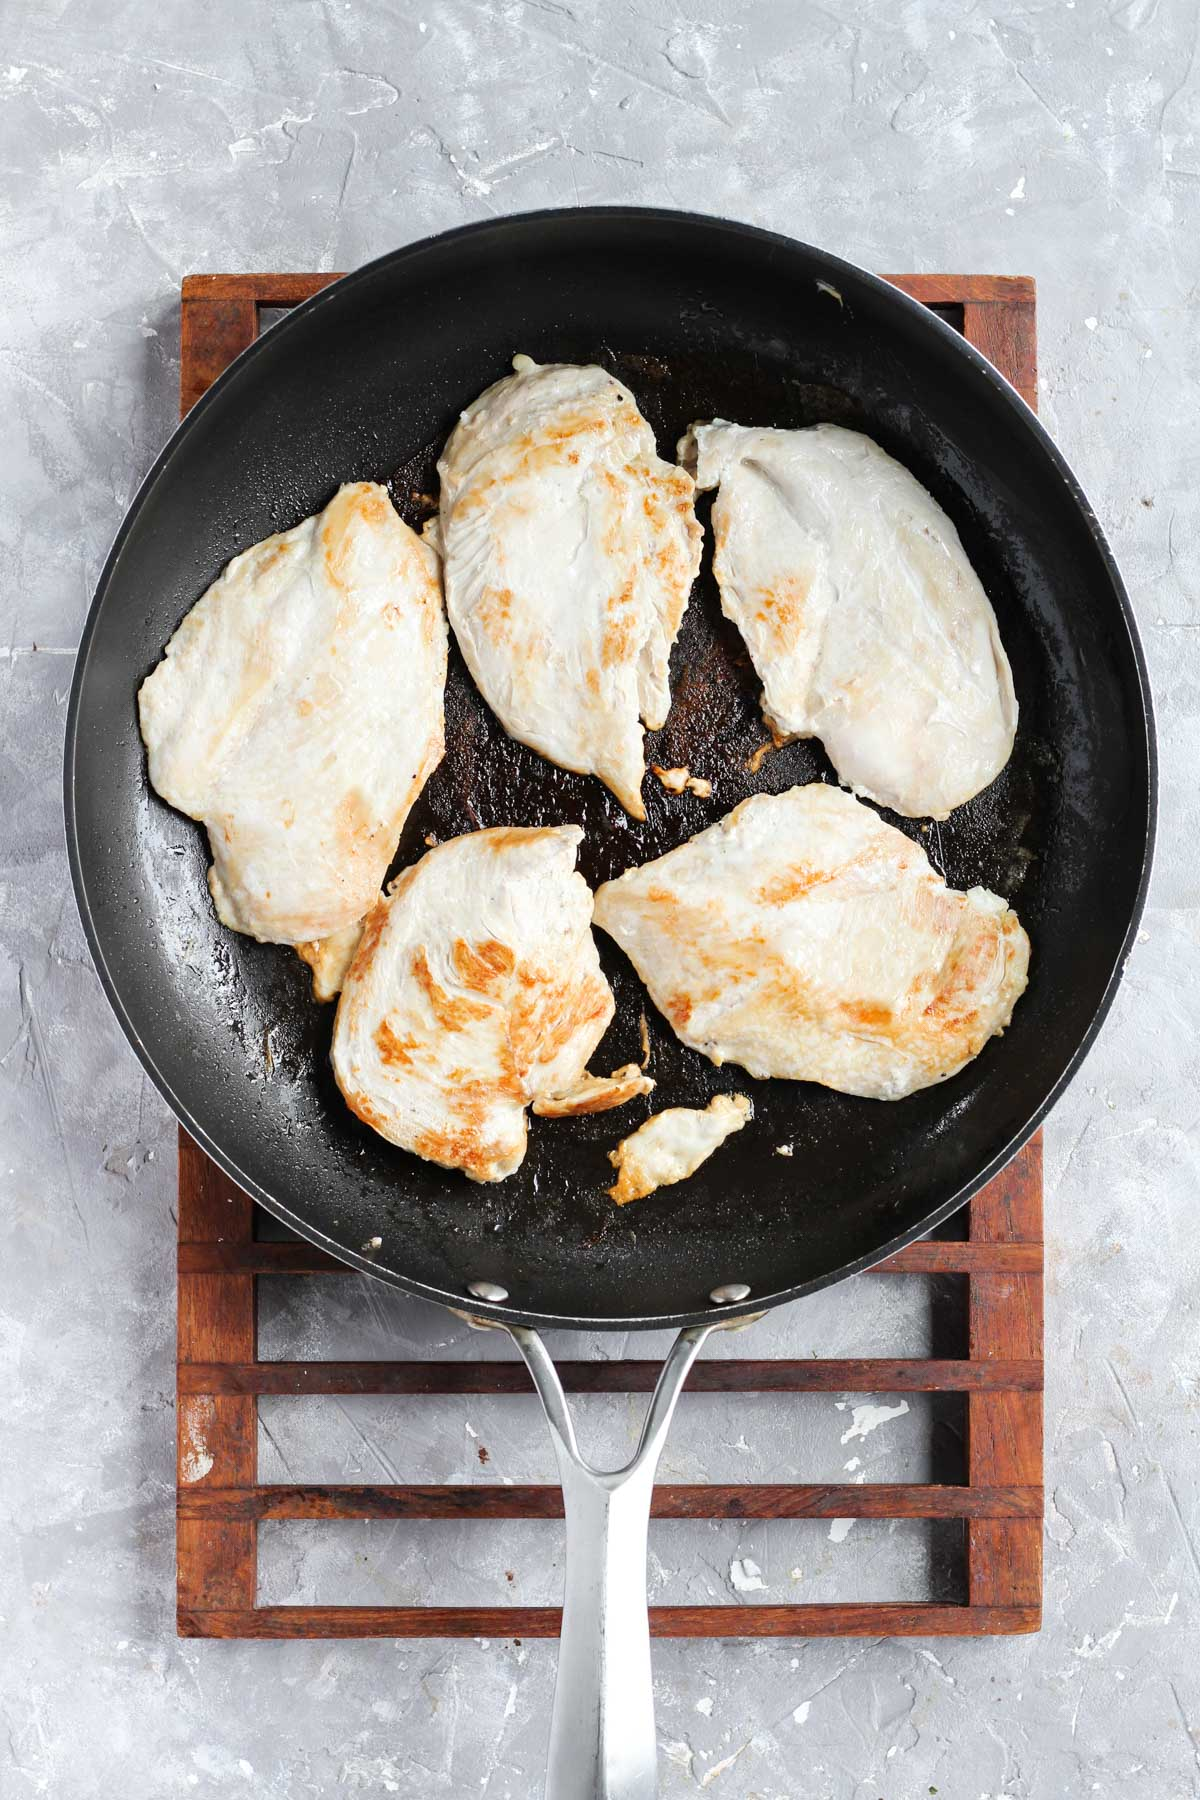 Cooked chicken in frying pan.